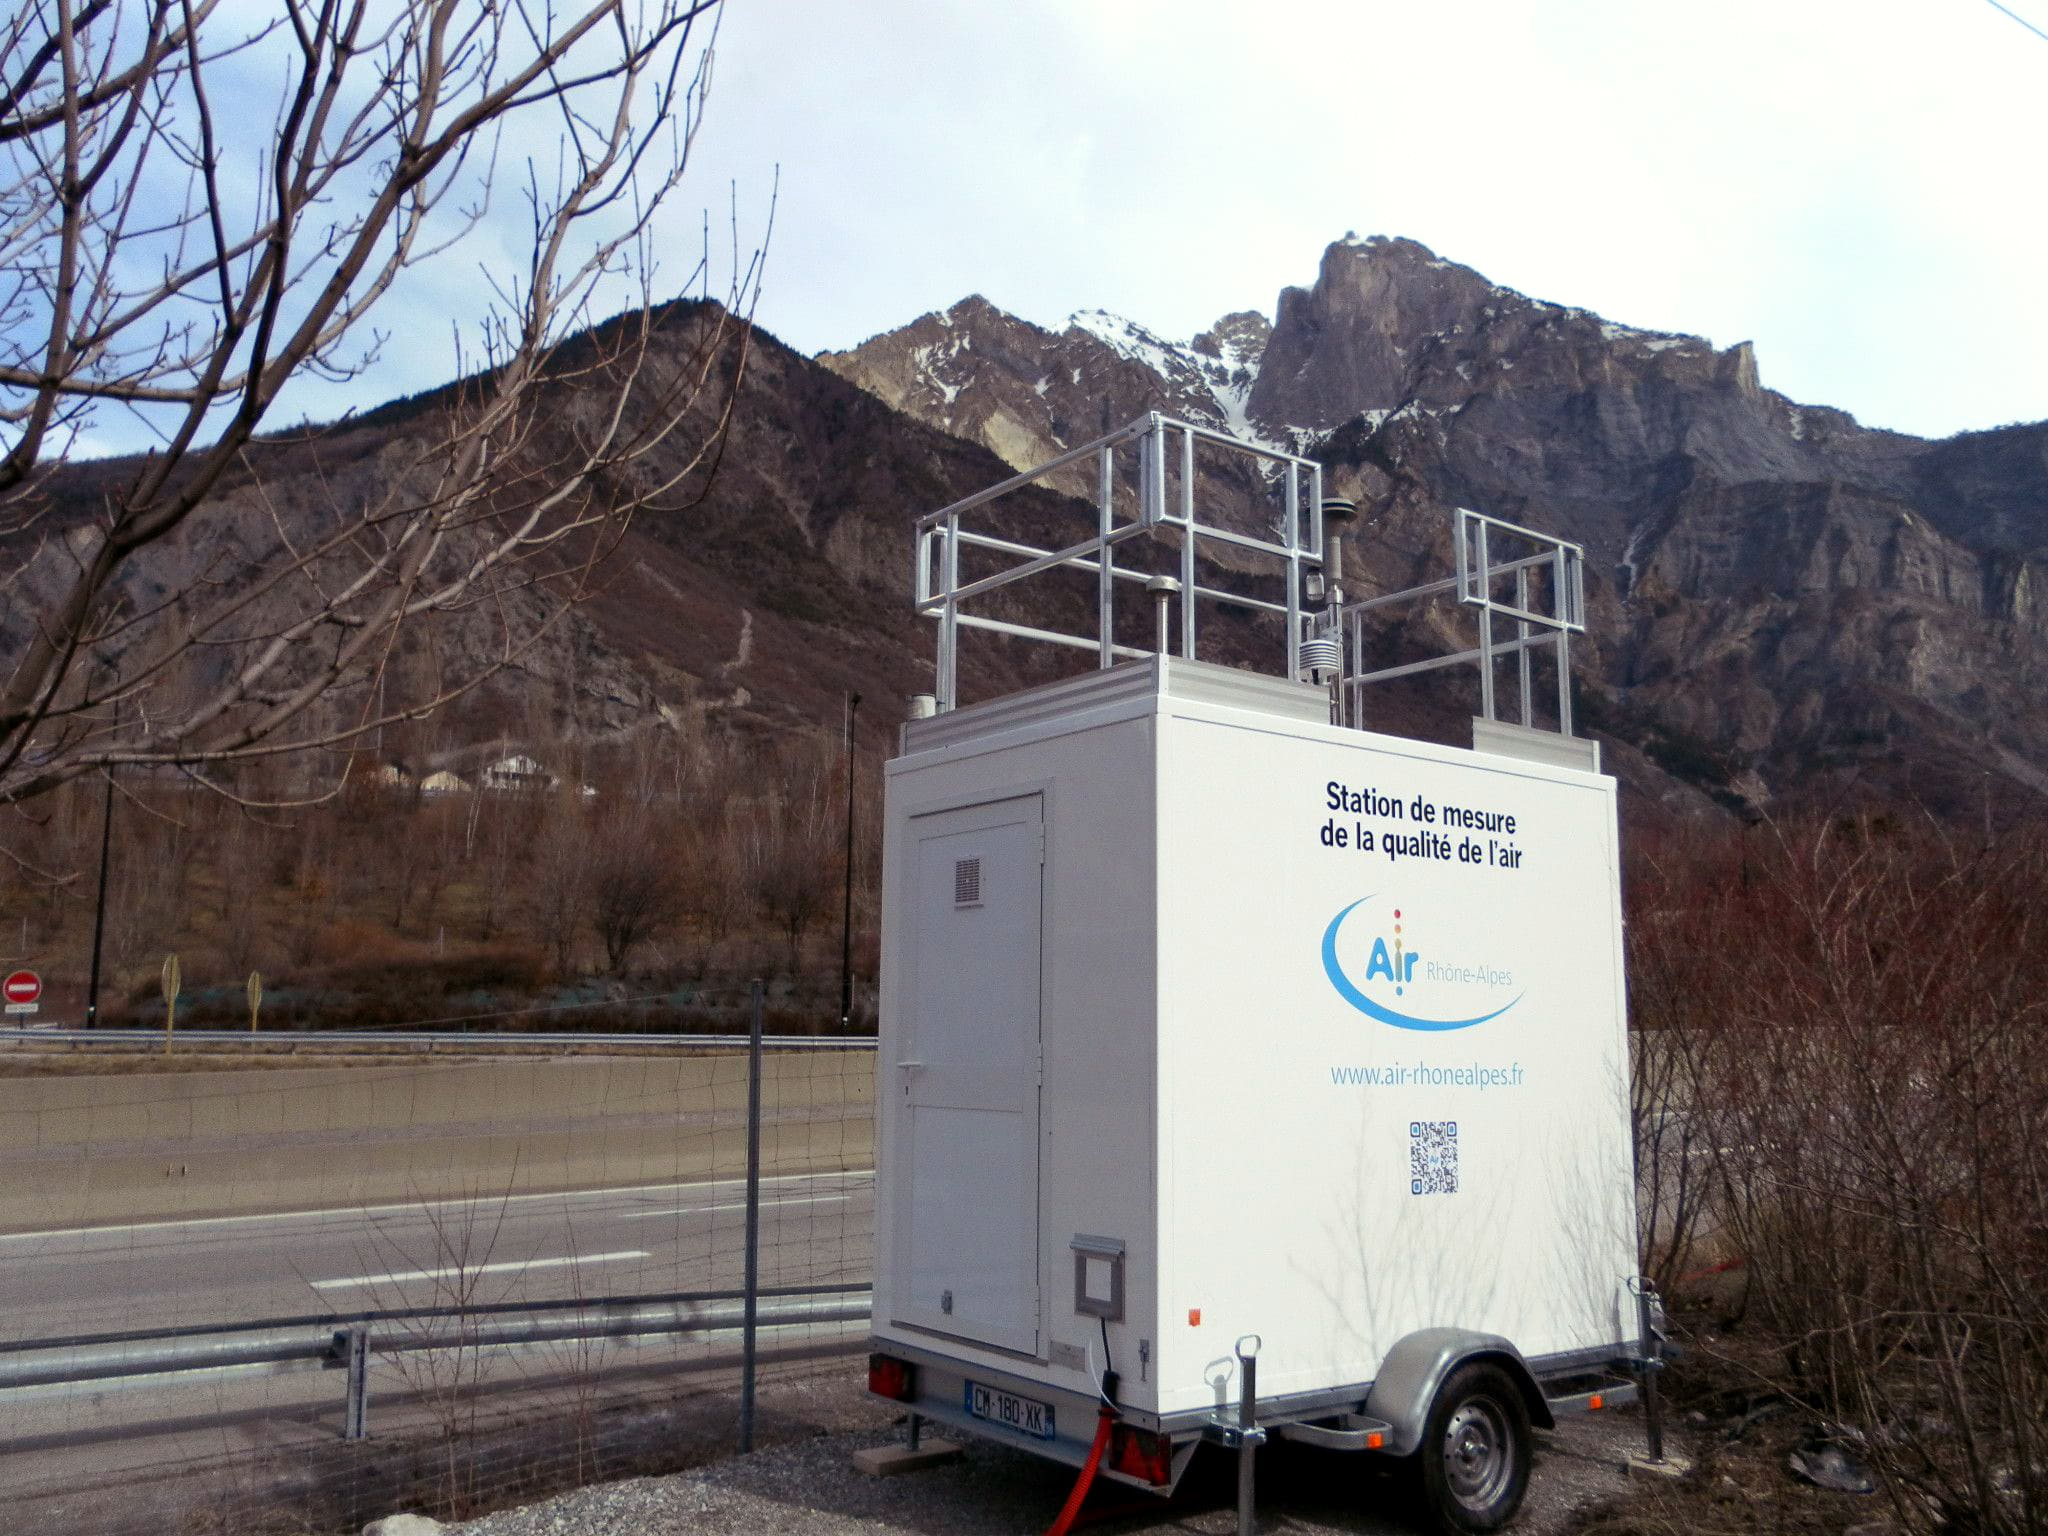 Station mobile de mesure de la qualité de l'air - Air-Rhone Alpes